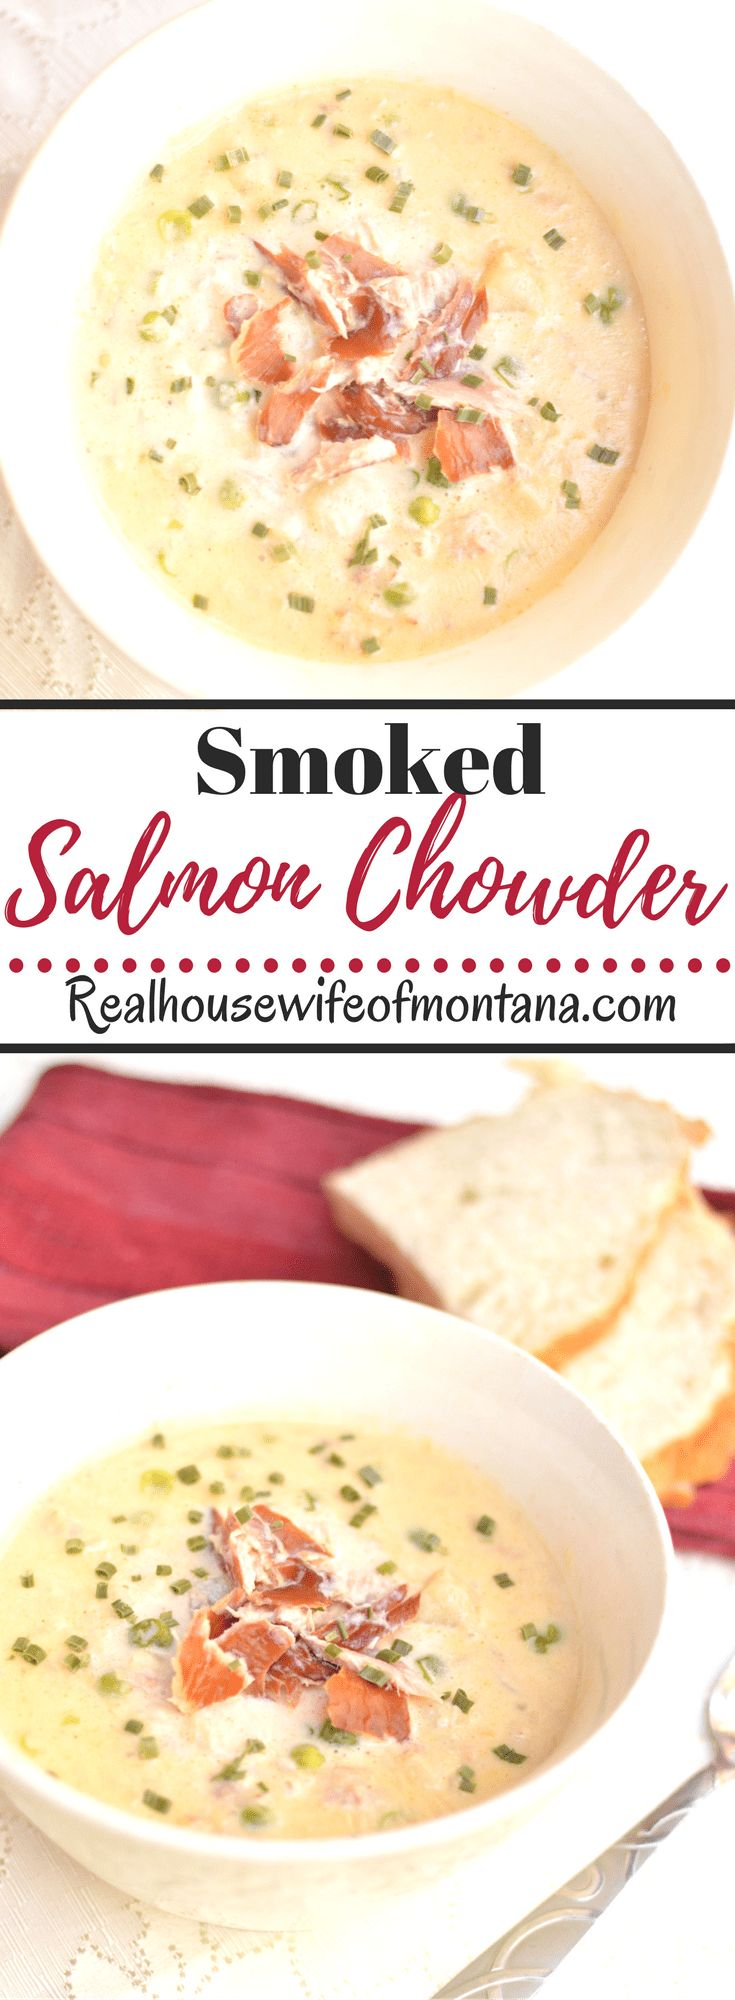 Smoked Salmon Chowder – A homemade, hearty, creamy and satisfying chowder with savory bits of smoked salmon, vegetables and packed with flavor. An easy dinner recipe when the family is craving a soup and chowder night! | realhousewifeofmontana.com